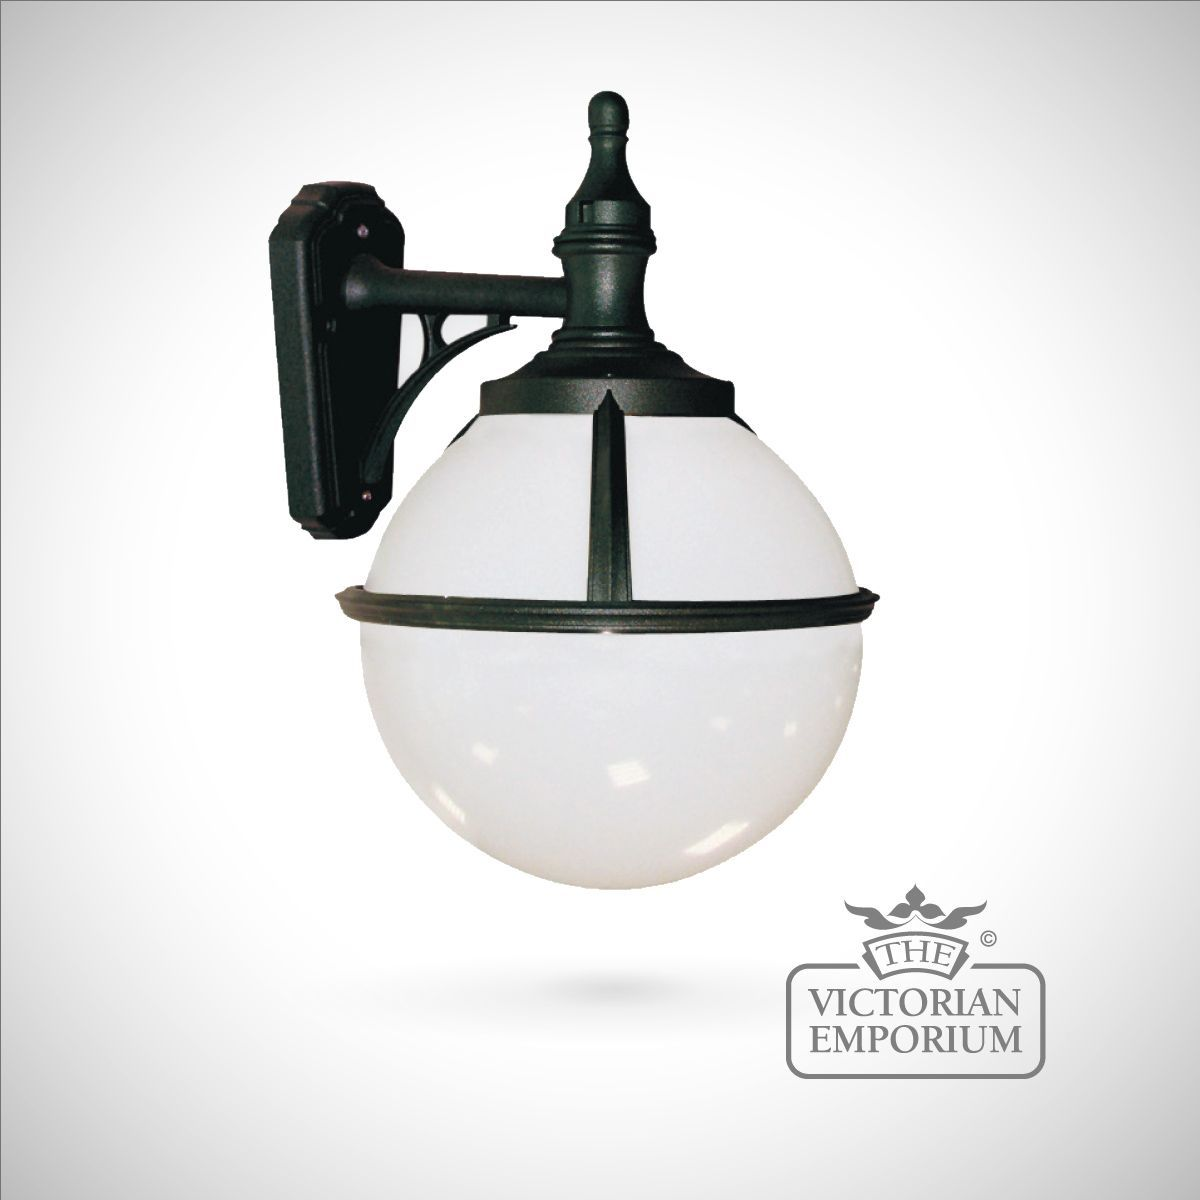 Buy Globe Wall Lantern, Outdoor Wall Lights   Spherical Black Wall Light  With Opaque Shade